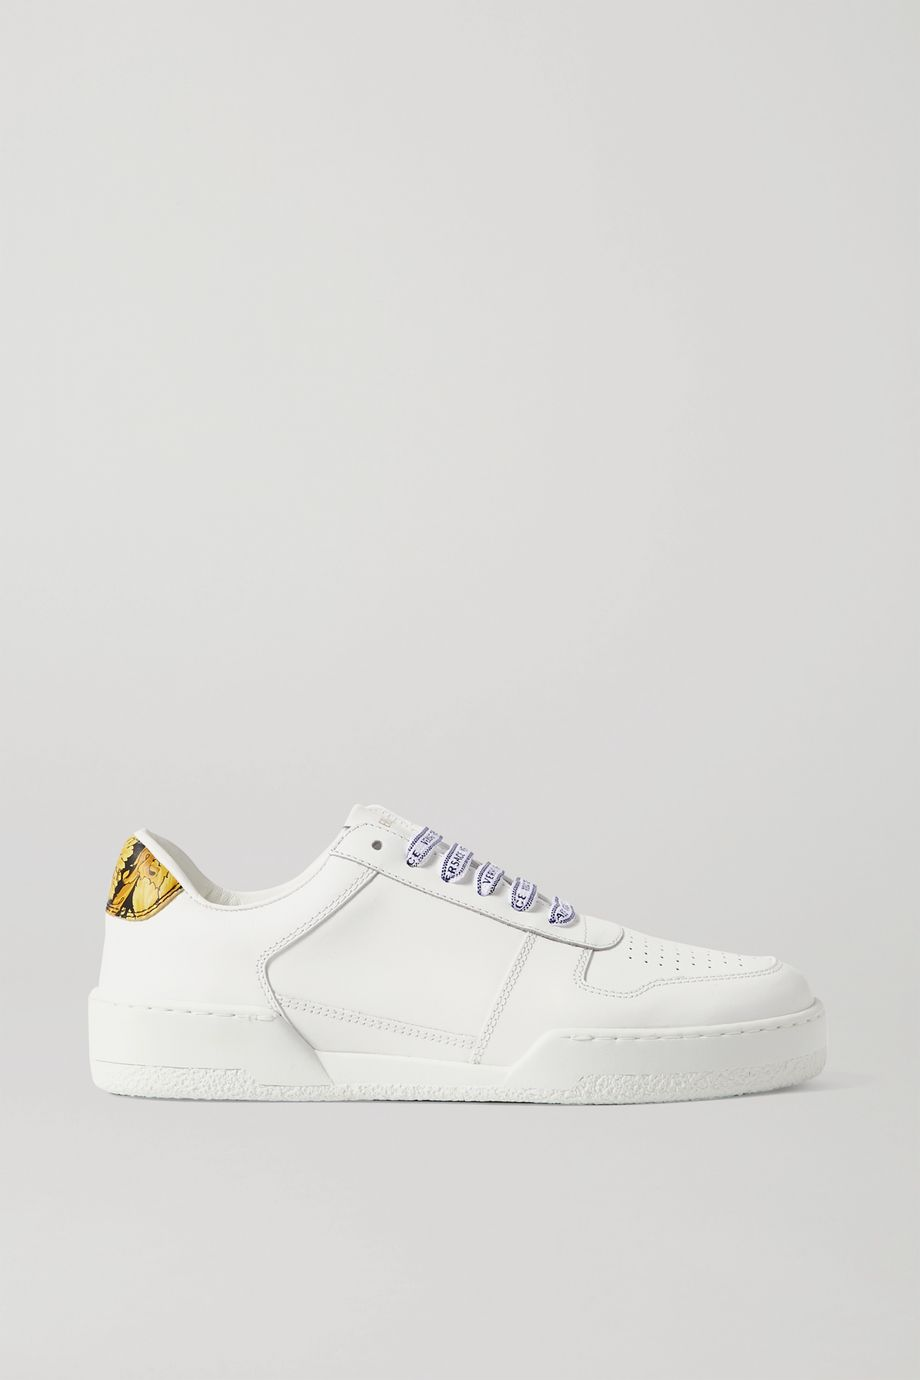 Versace Ilus printed leather sneakers